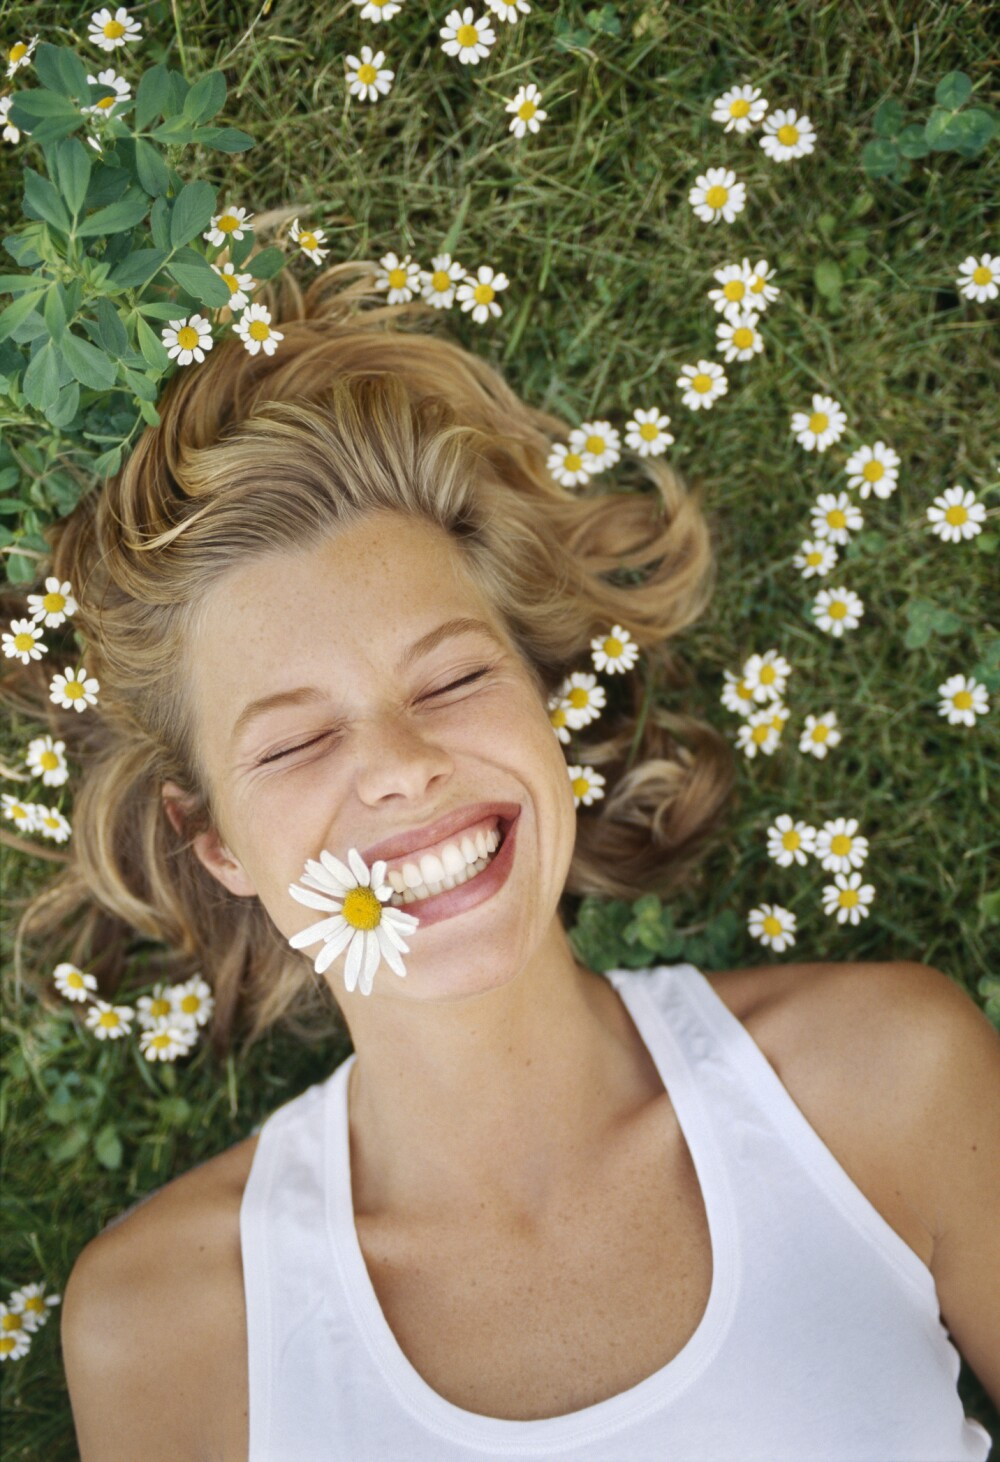 Young woman lying on grass, with daisy in mouth, smiling